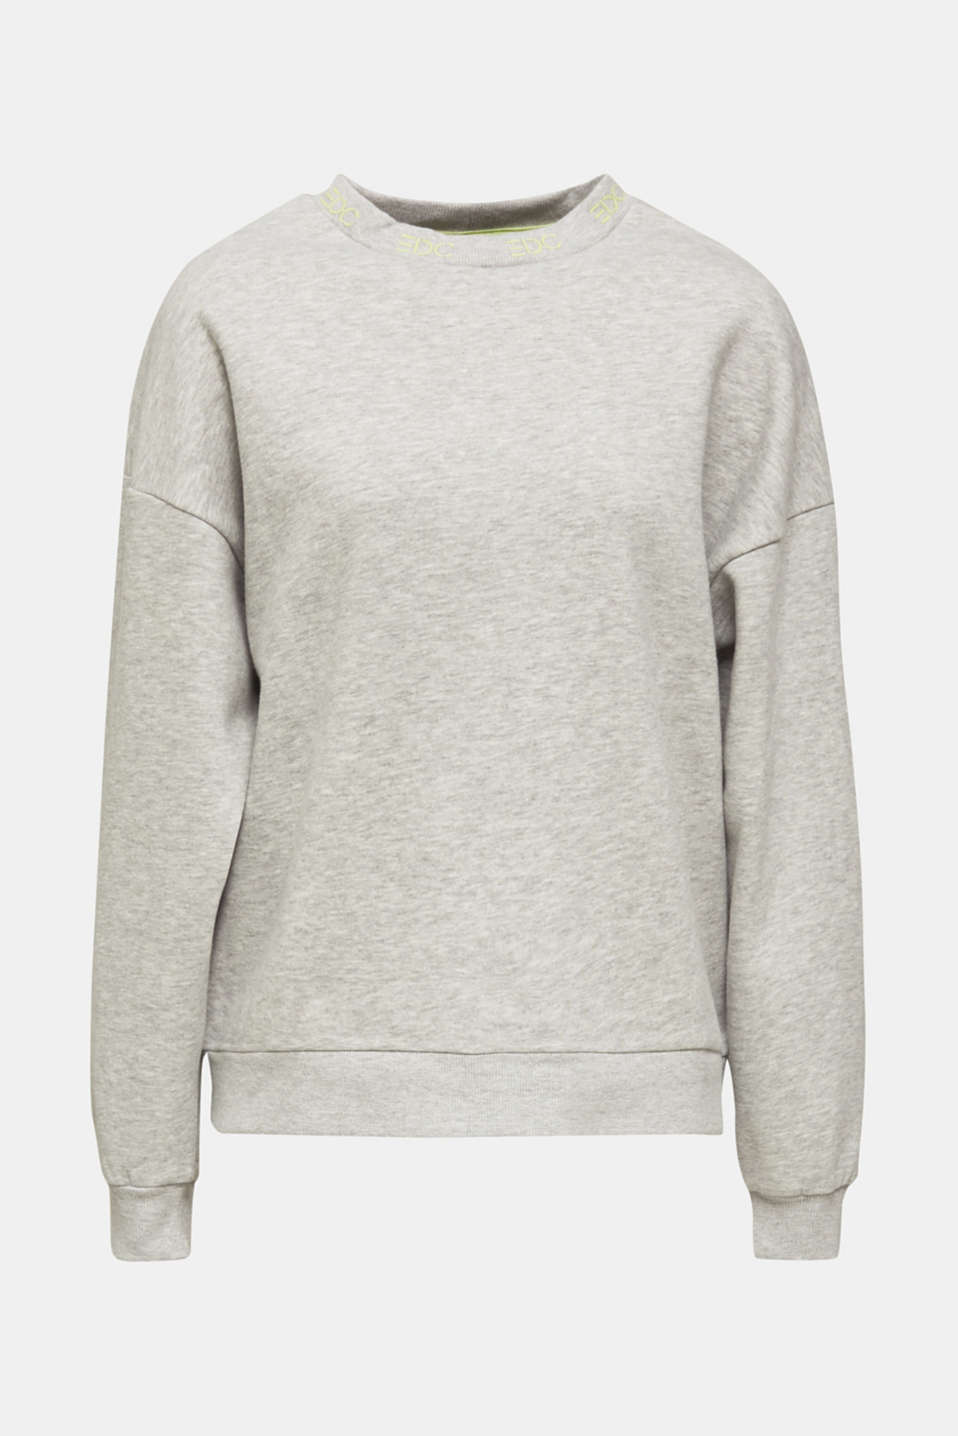 Oversized melange sweatshirt, LIGHT GREY 5, detail image number 6